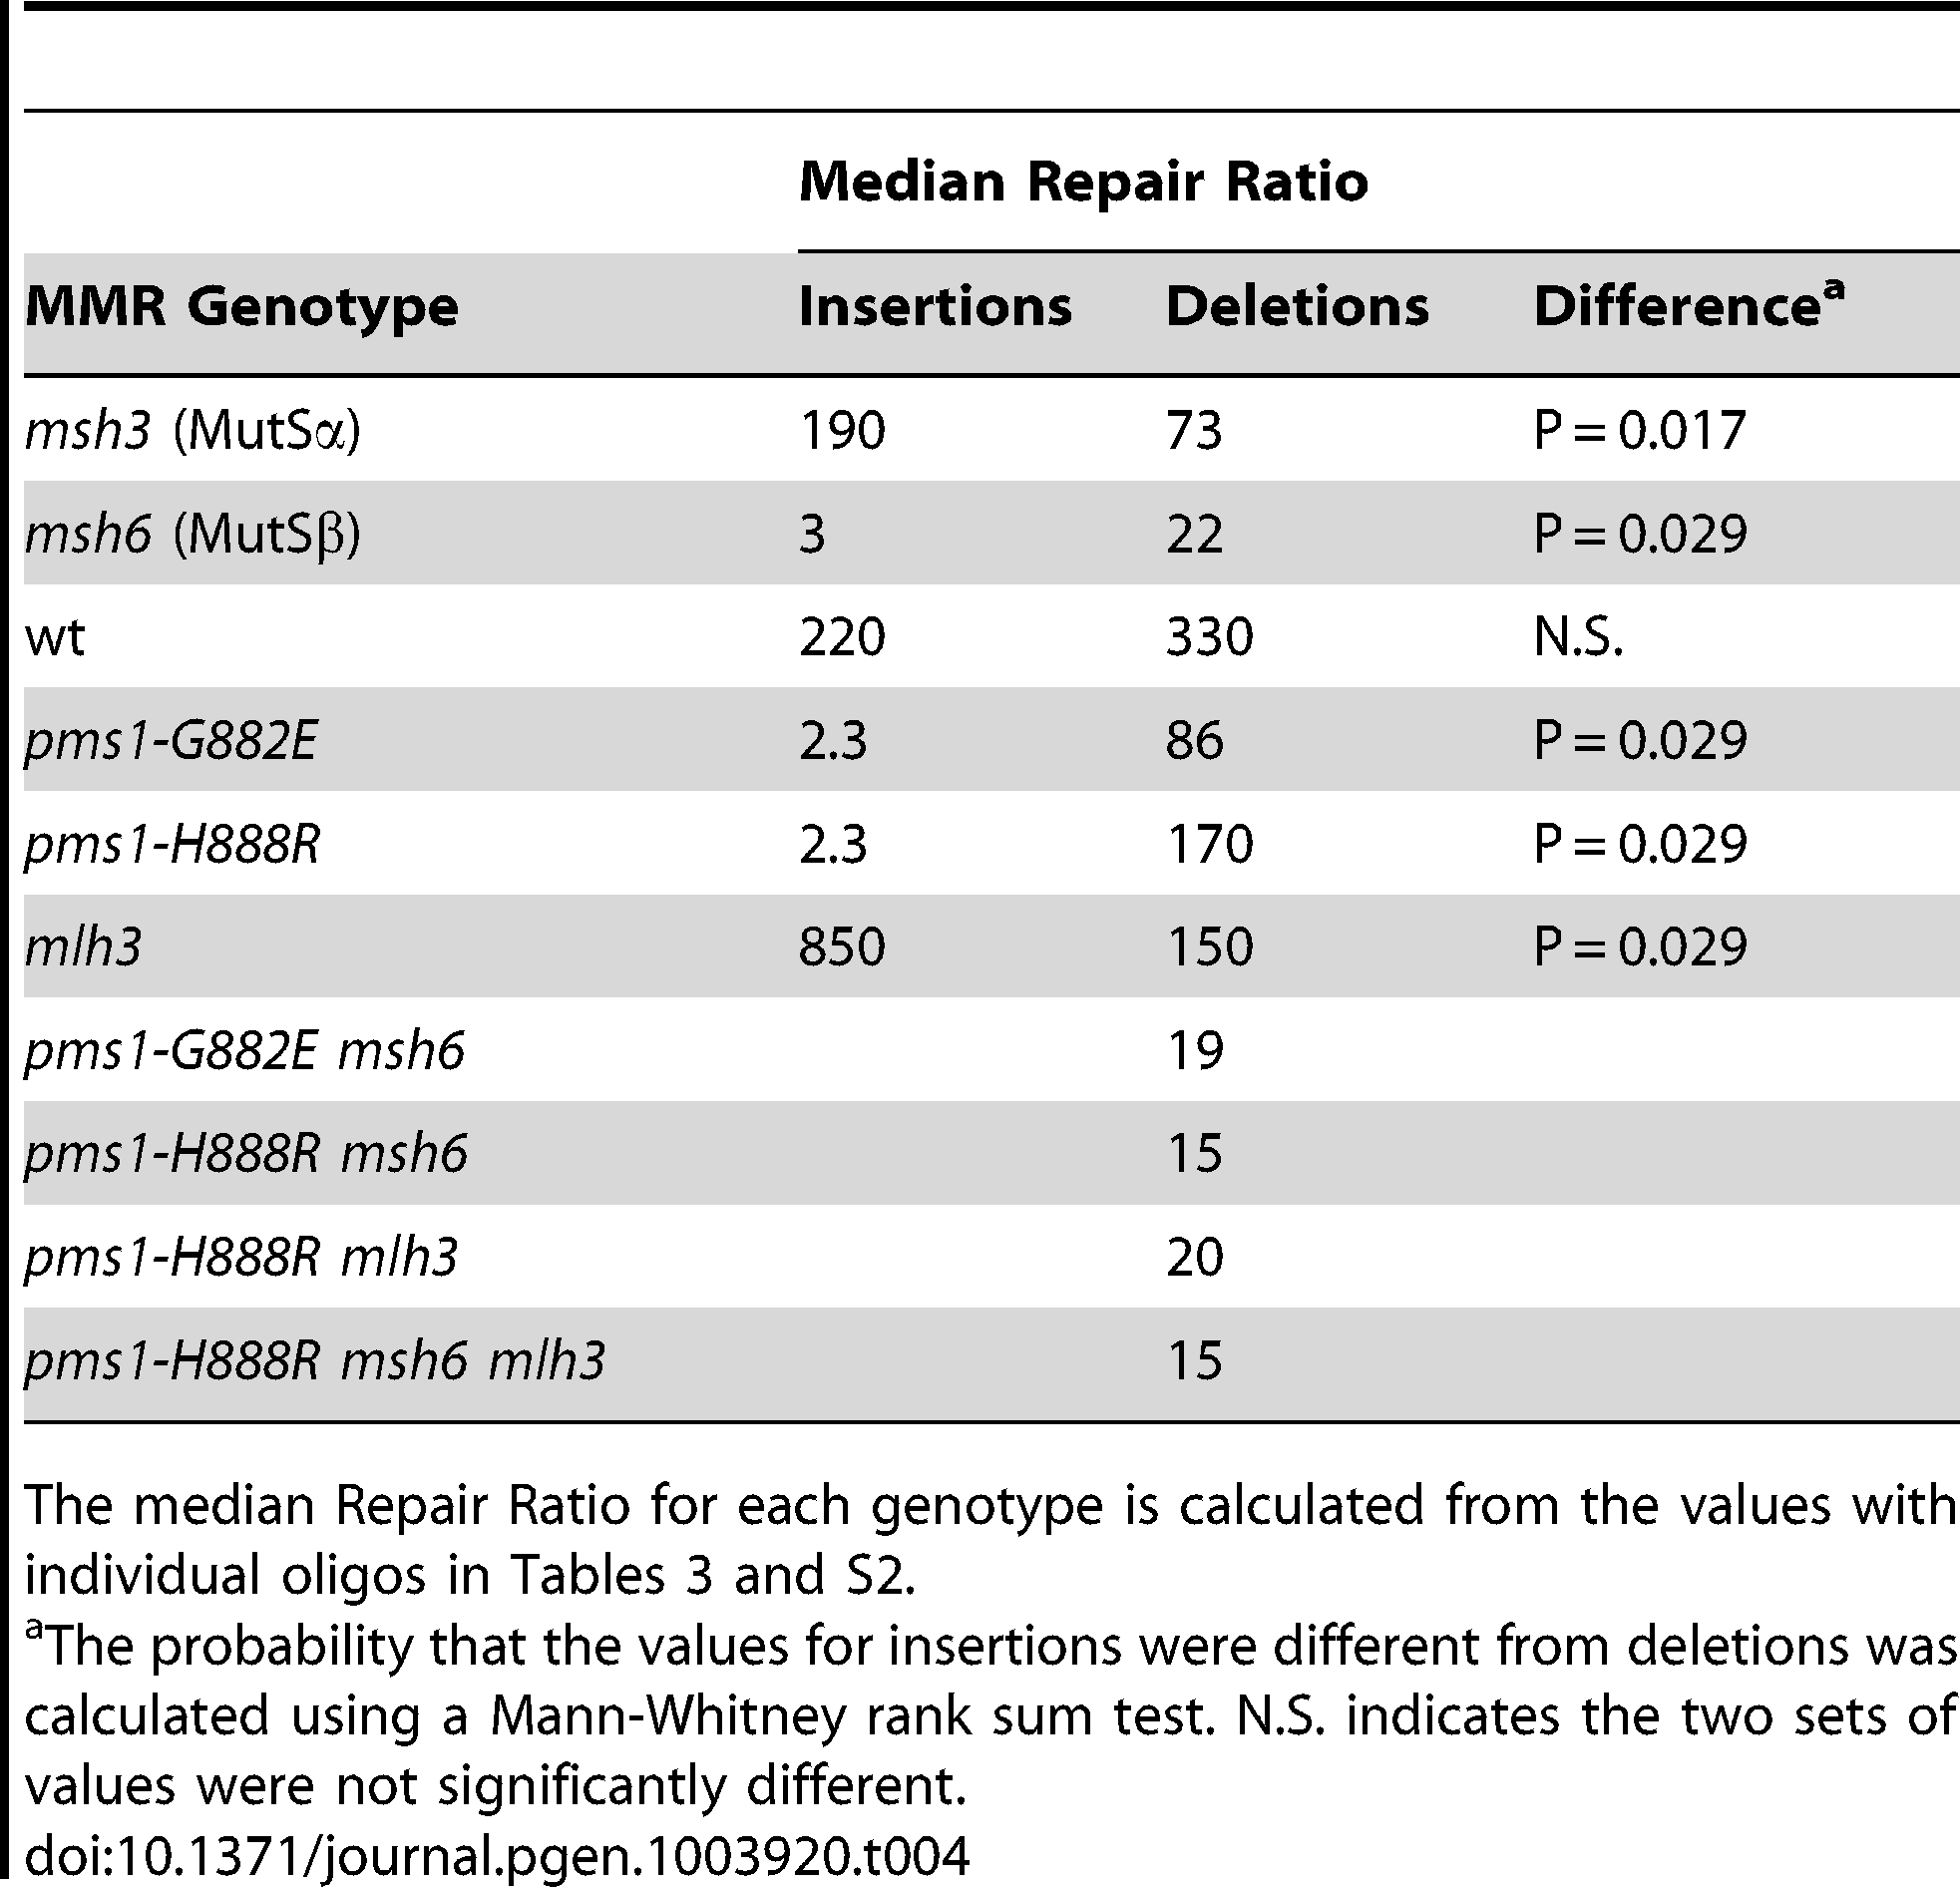 Median Repair Ratios for 1-nt in/del mismatches.